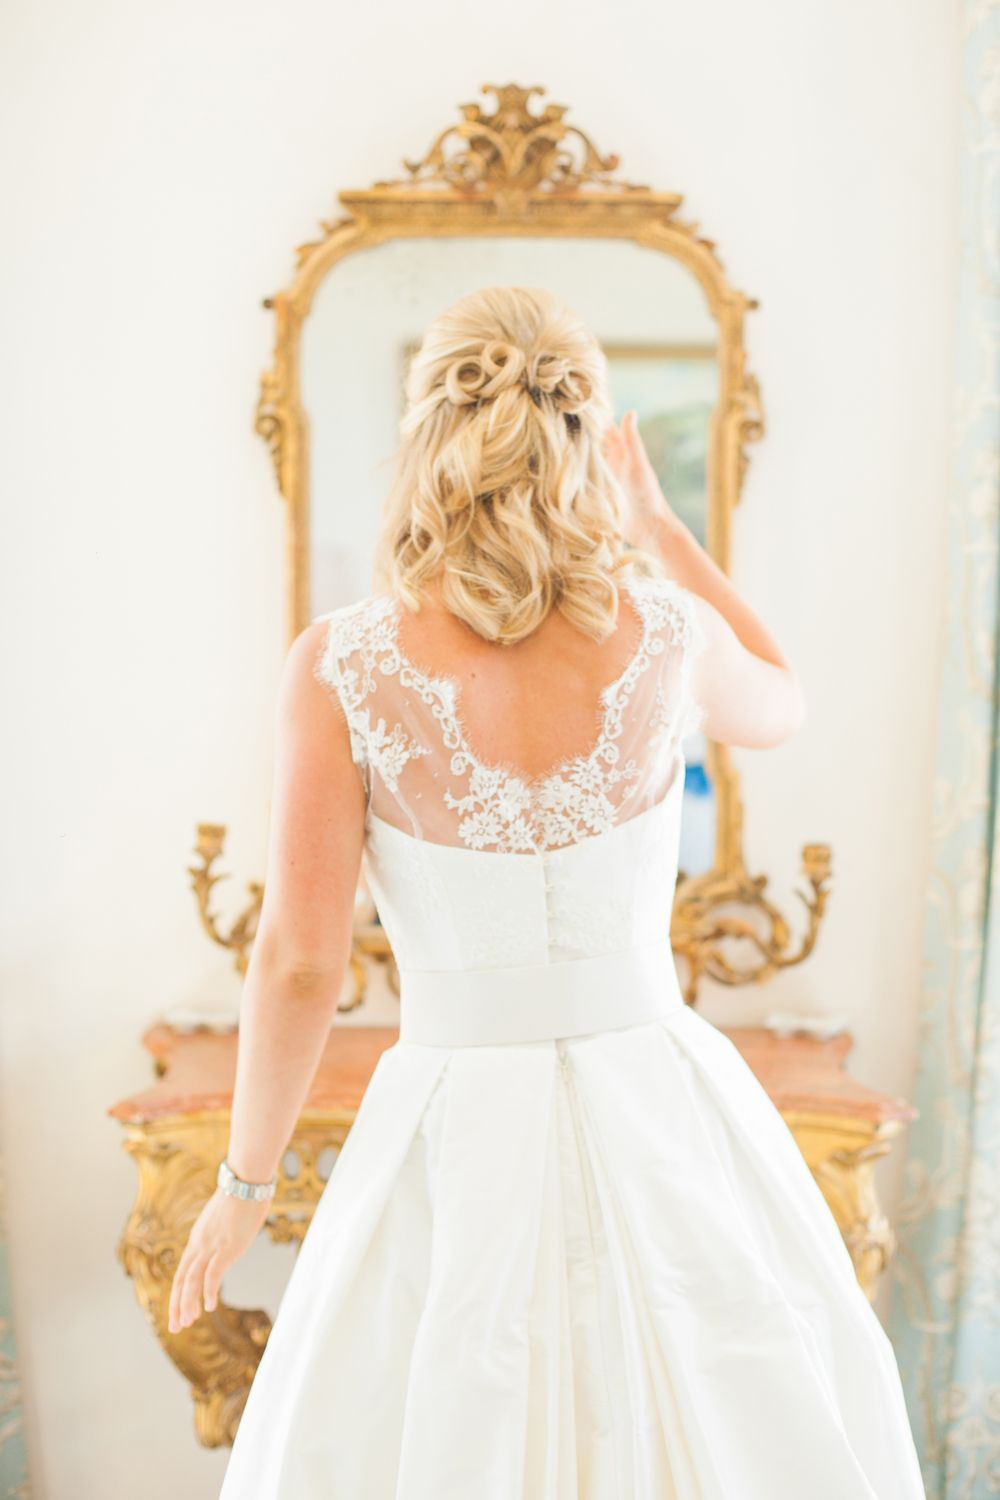 Bridal Hair in DC | Bridal Hair and Makeup in DC | Pinterest ...